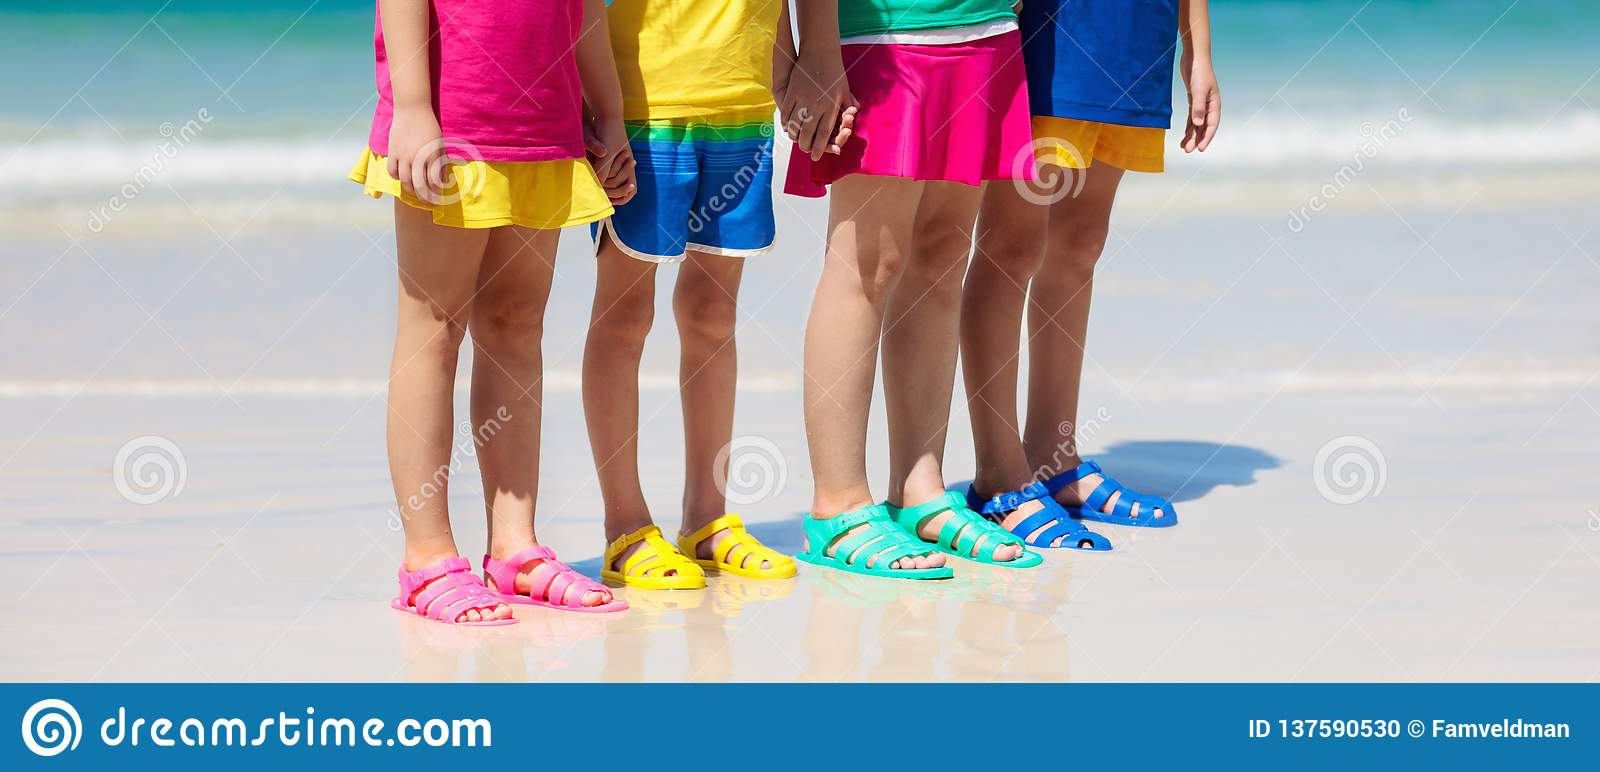 4502fd2b1bf5 Kids beach shoes. Colorful footwear for boy or girl. Group of children  wearing aqua shoe playing on tropical beach on summer vacation. Water and  sand fun.